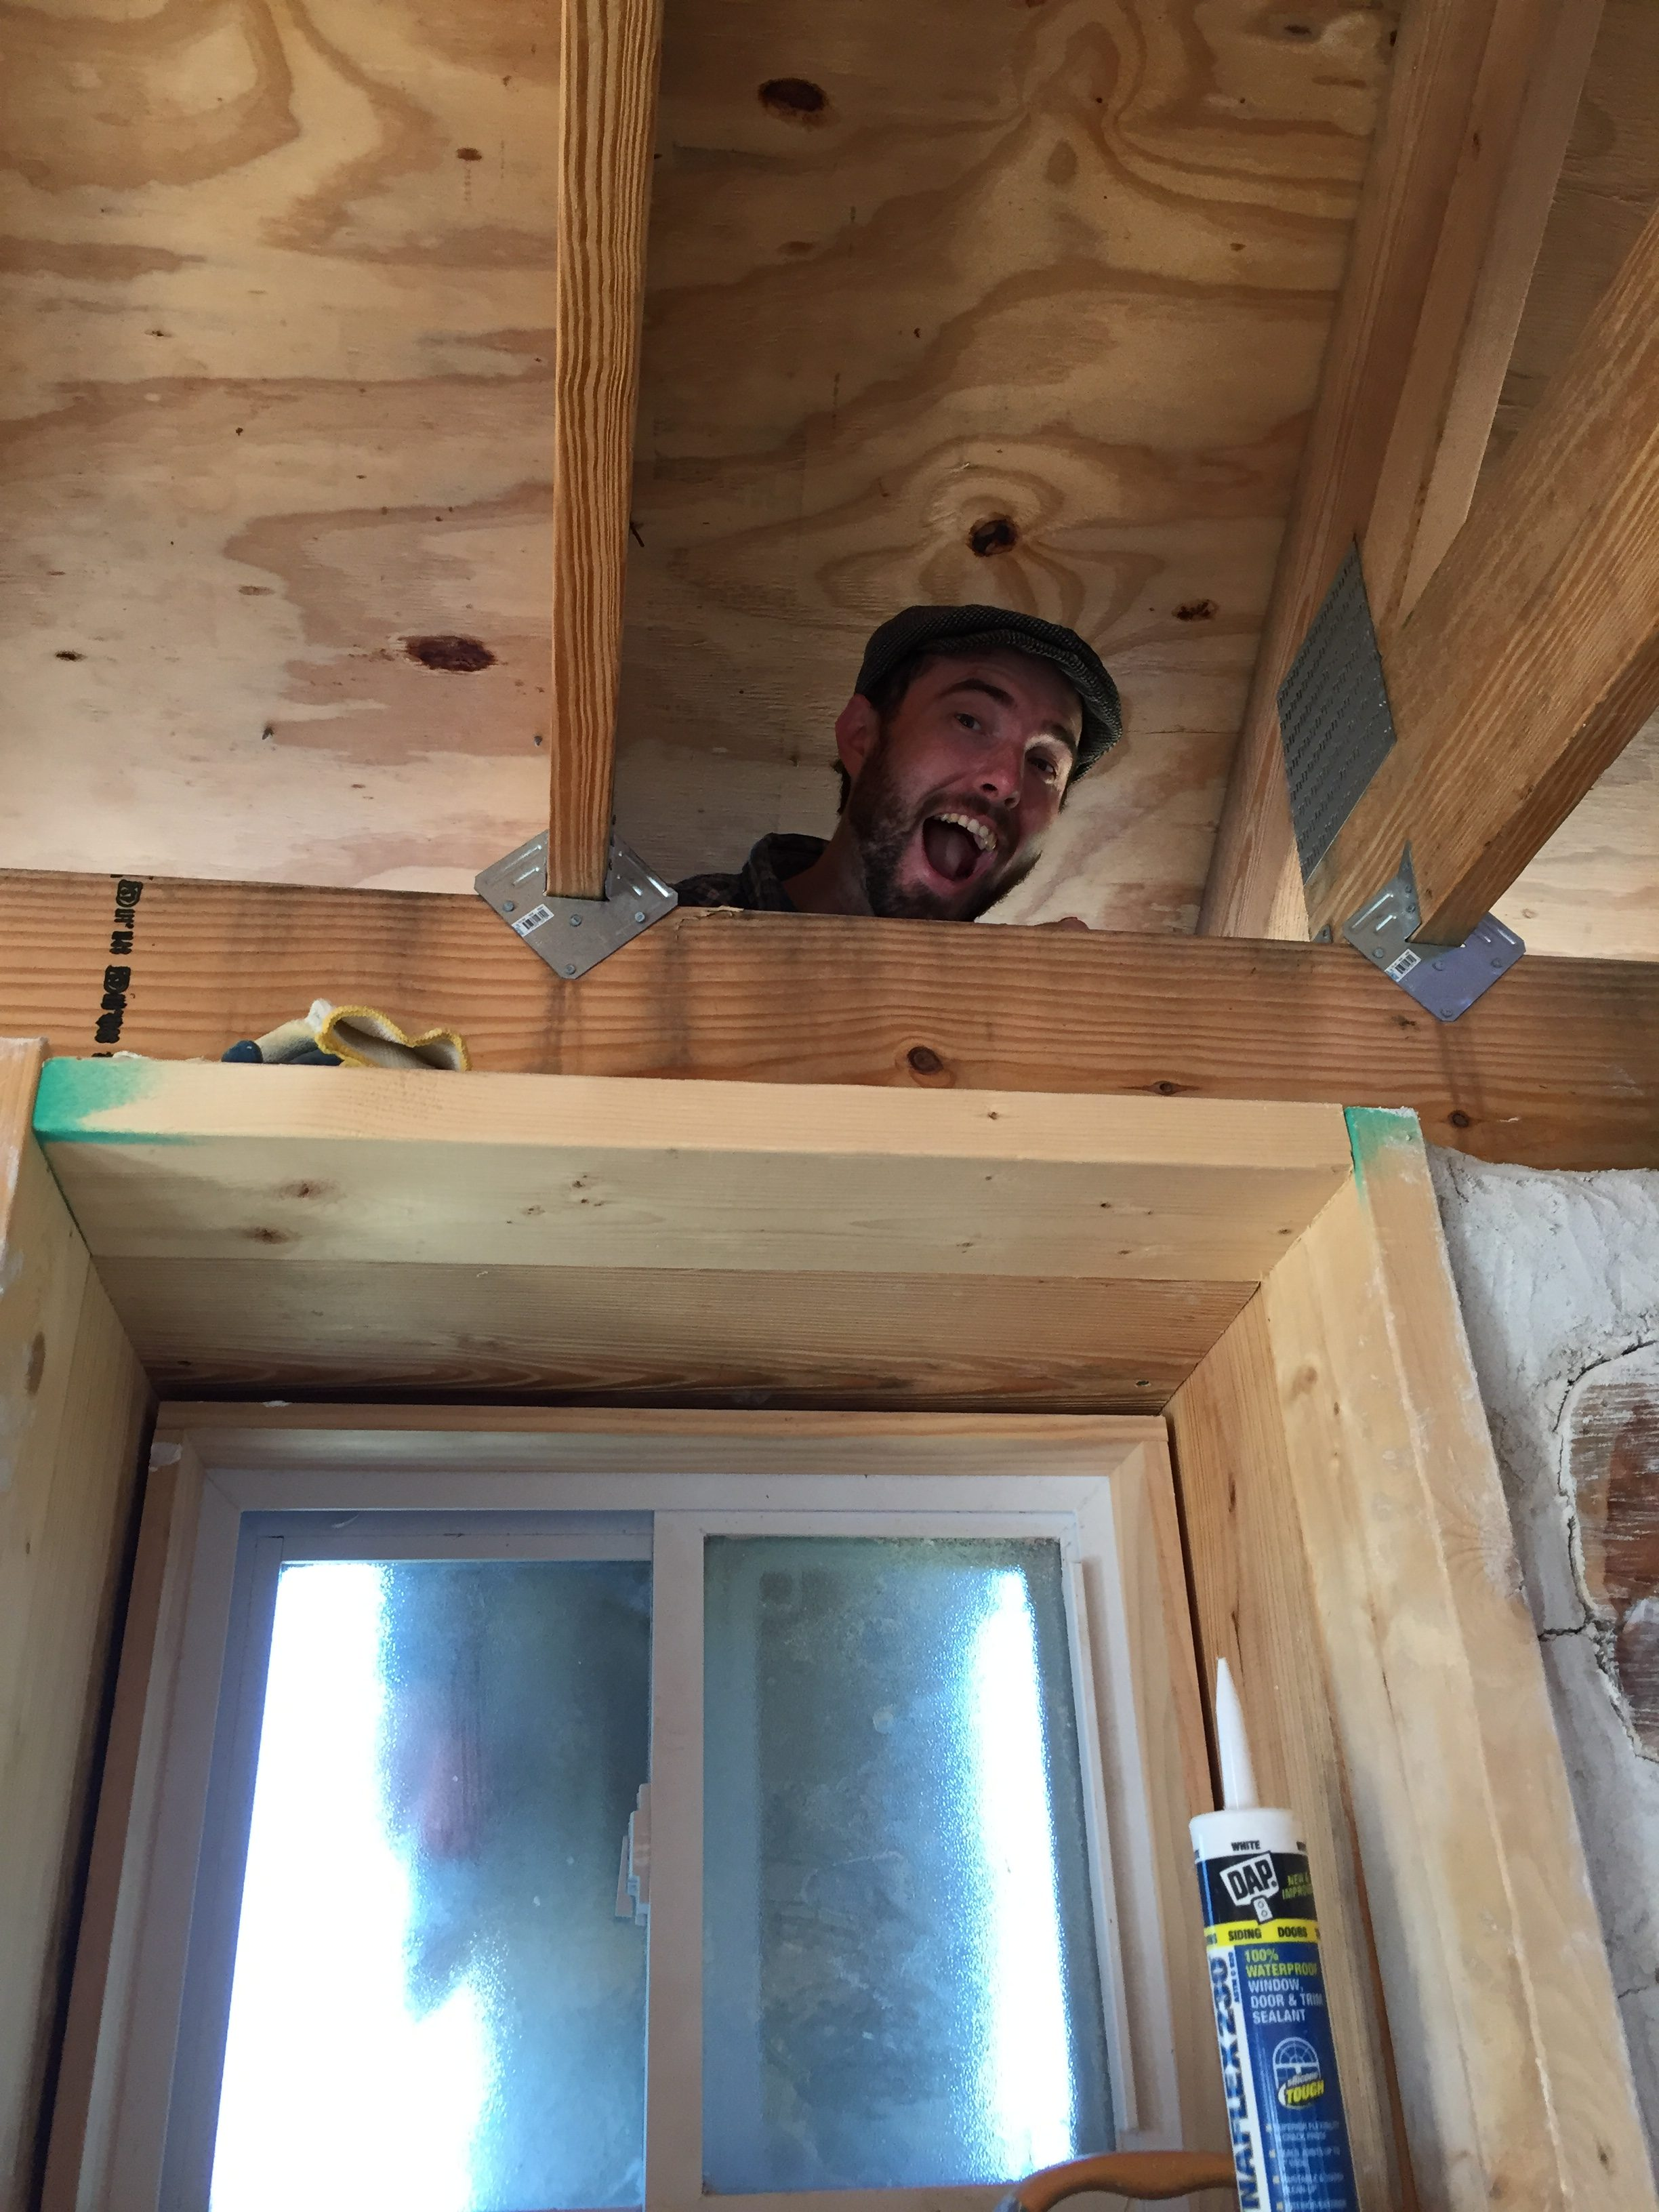 Building a house is hard work, but it's also pretty fun!